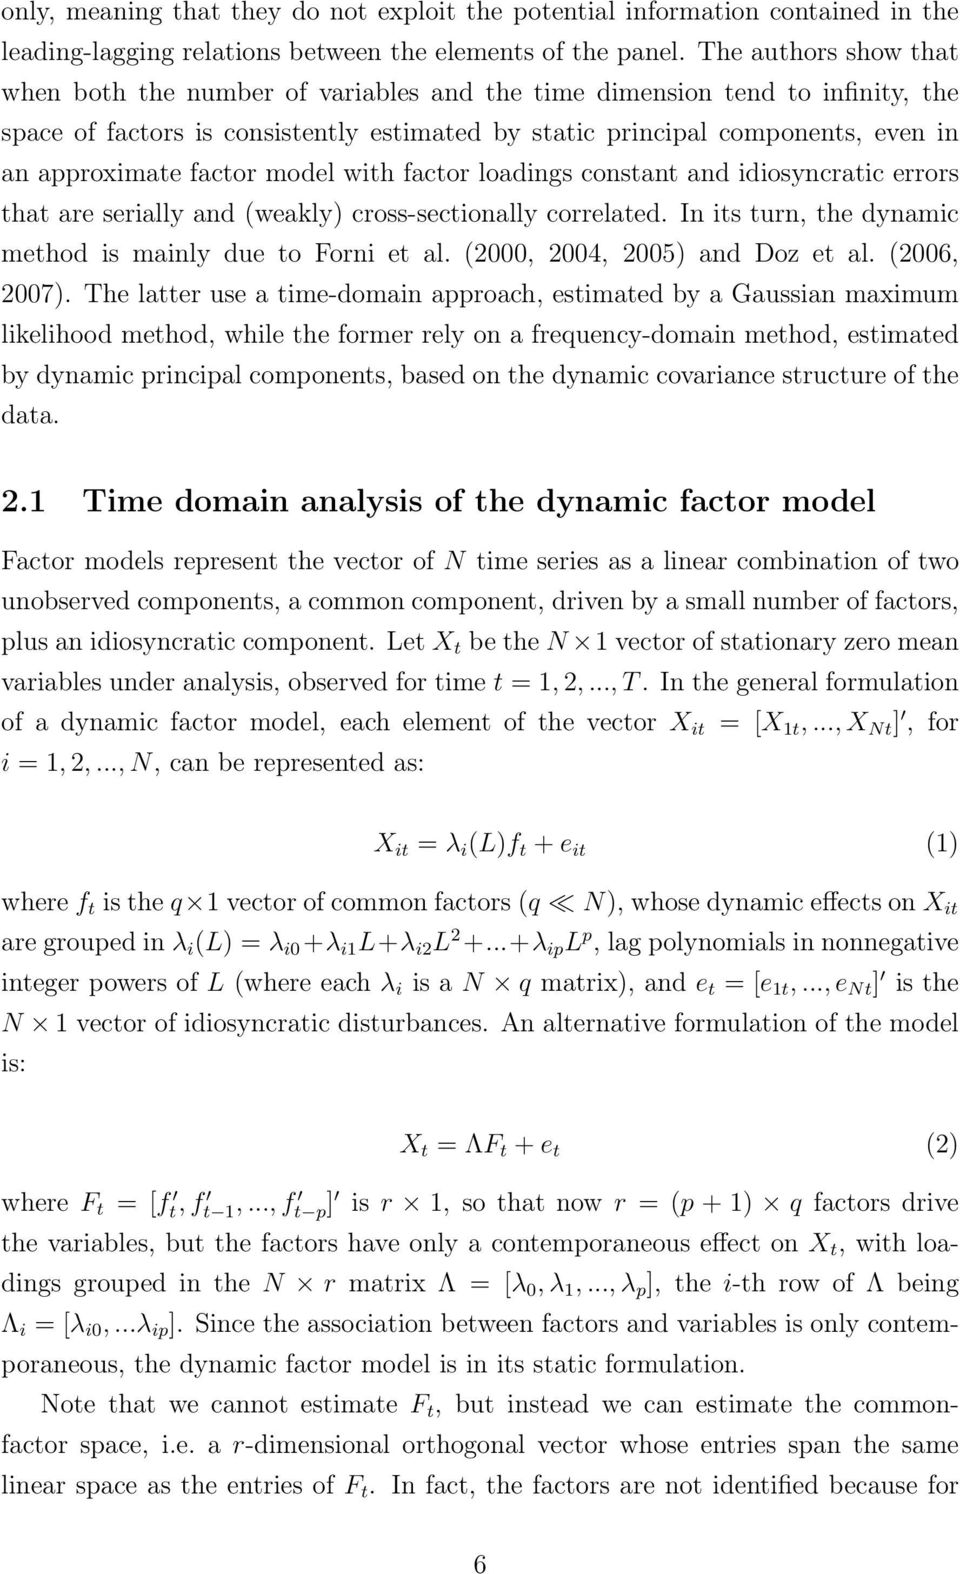 factor model with factor loadings constant and idiosyncratic errors that are serially and (weakly) cross-sectionally correlated. In its turn, the dynamic method is mainly due to Forni et al.